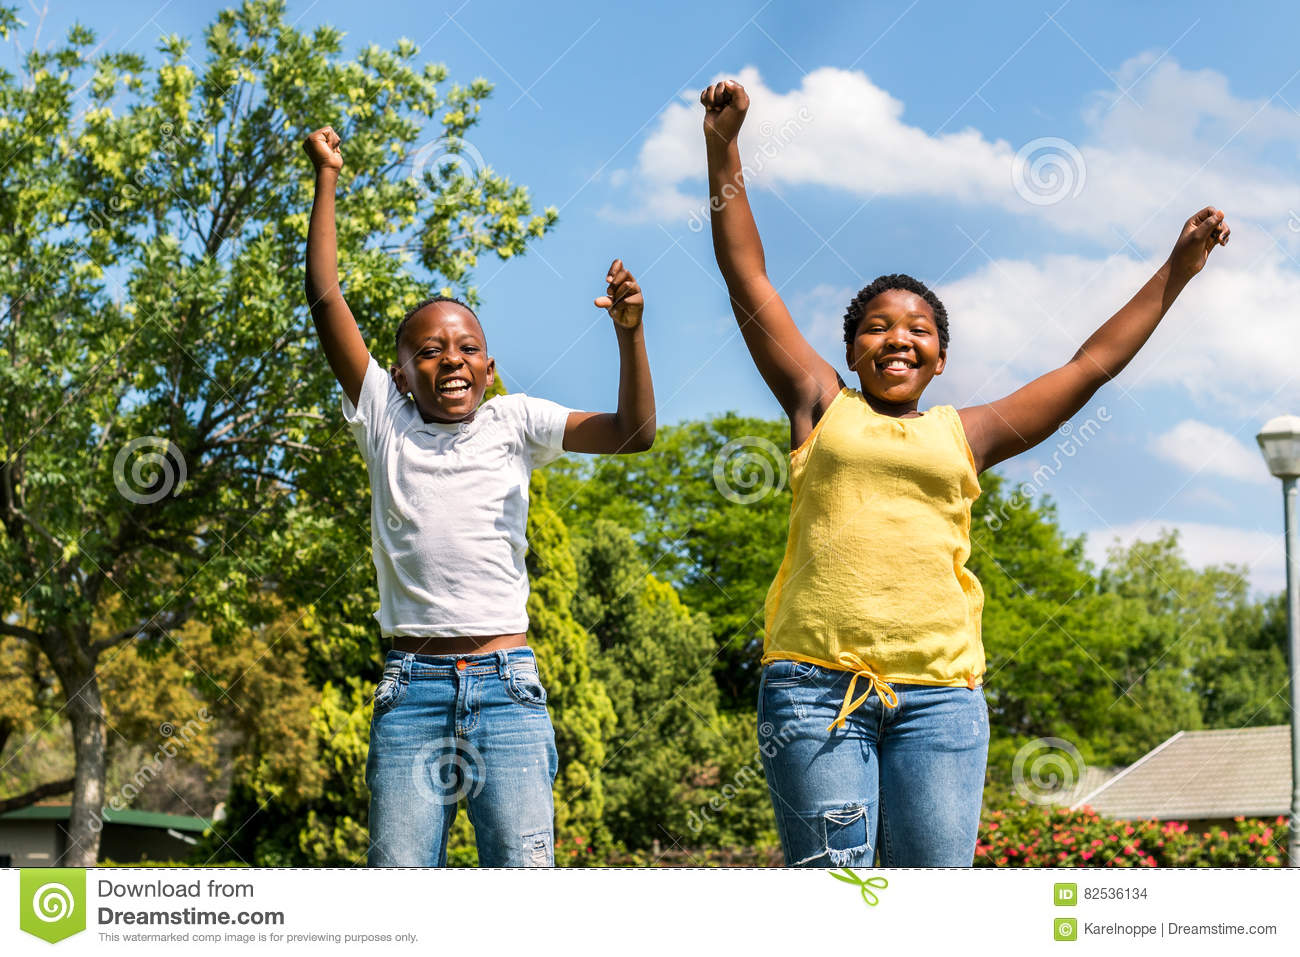 African kids jumping together in backyard.